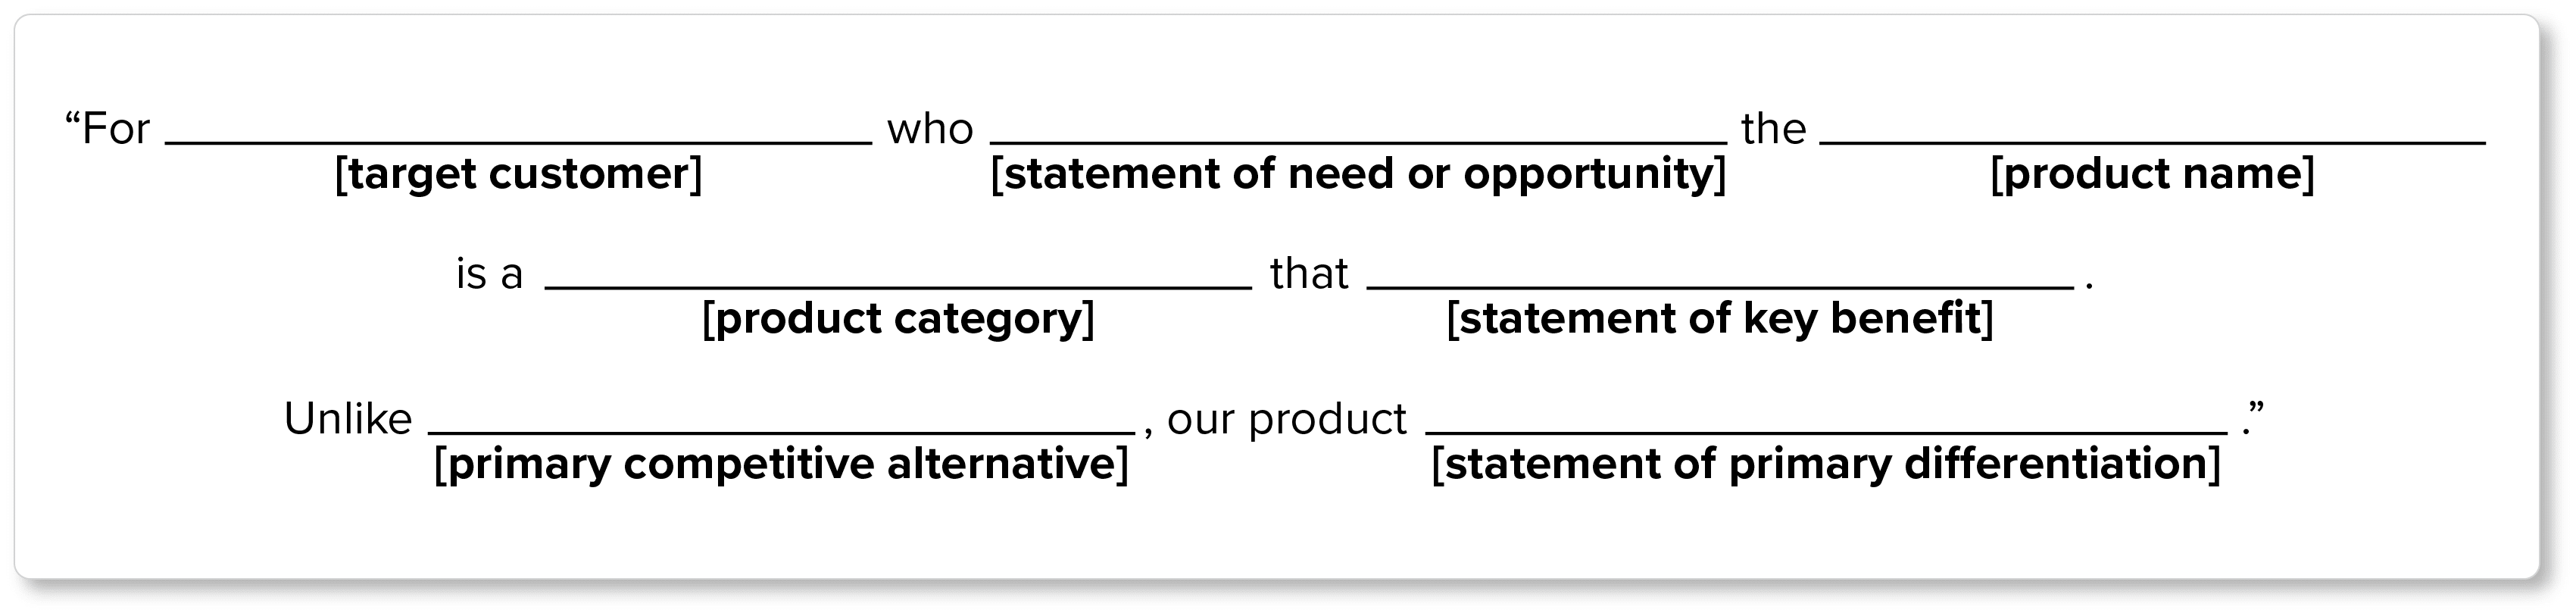 Writing Your Brand Positioning Statement | Zoho Academy